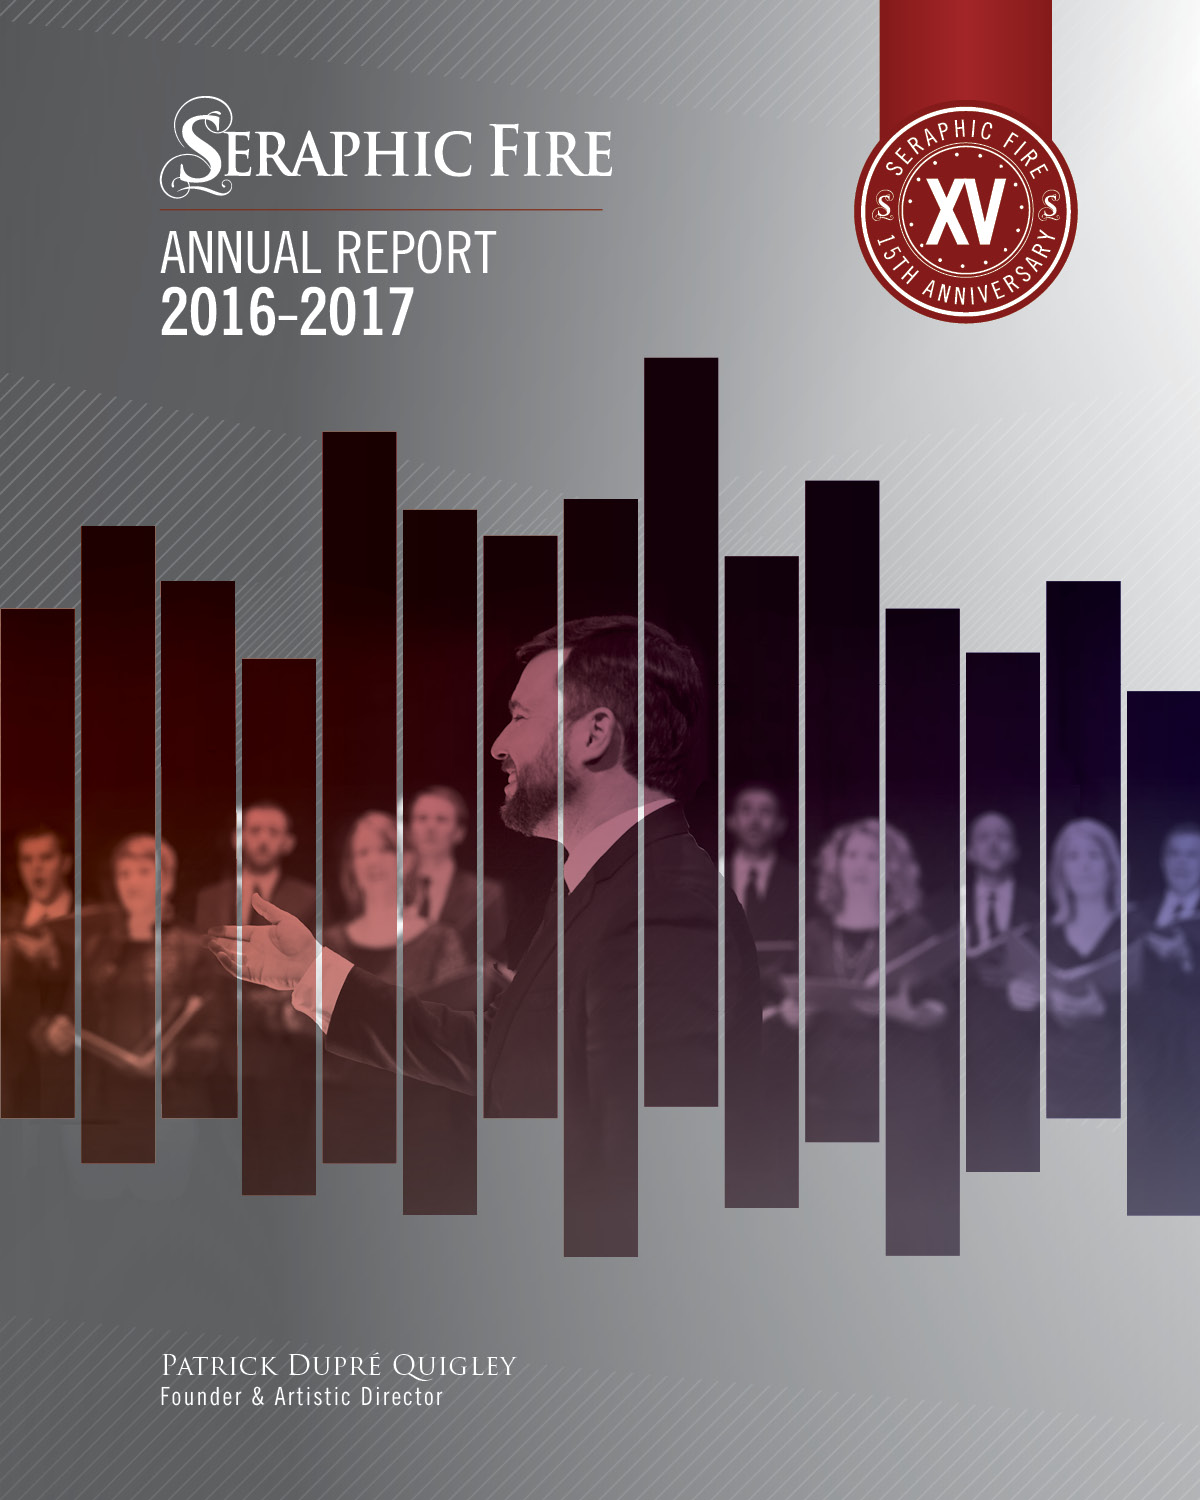 Seraphic Fire - Annual Report 2016-2017